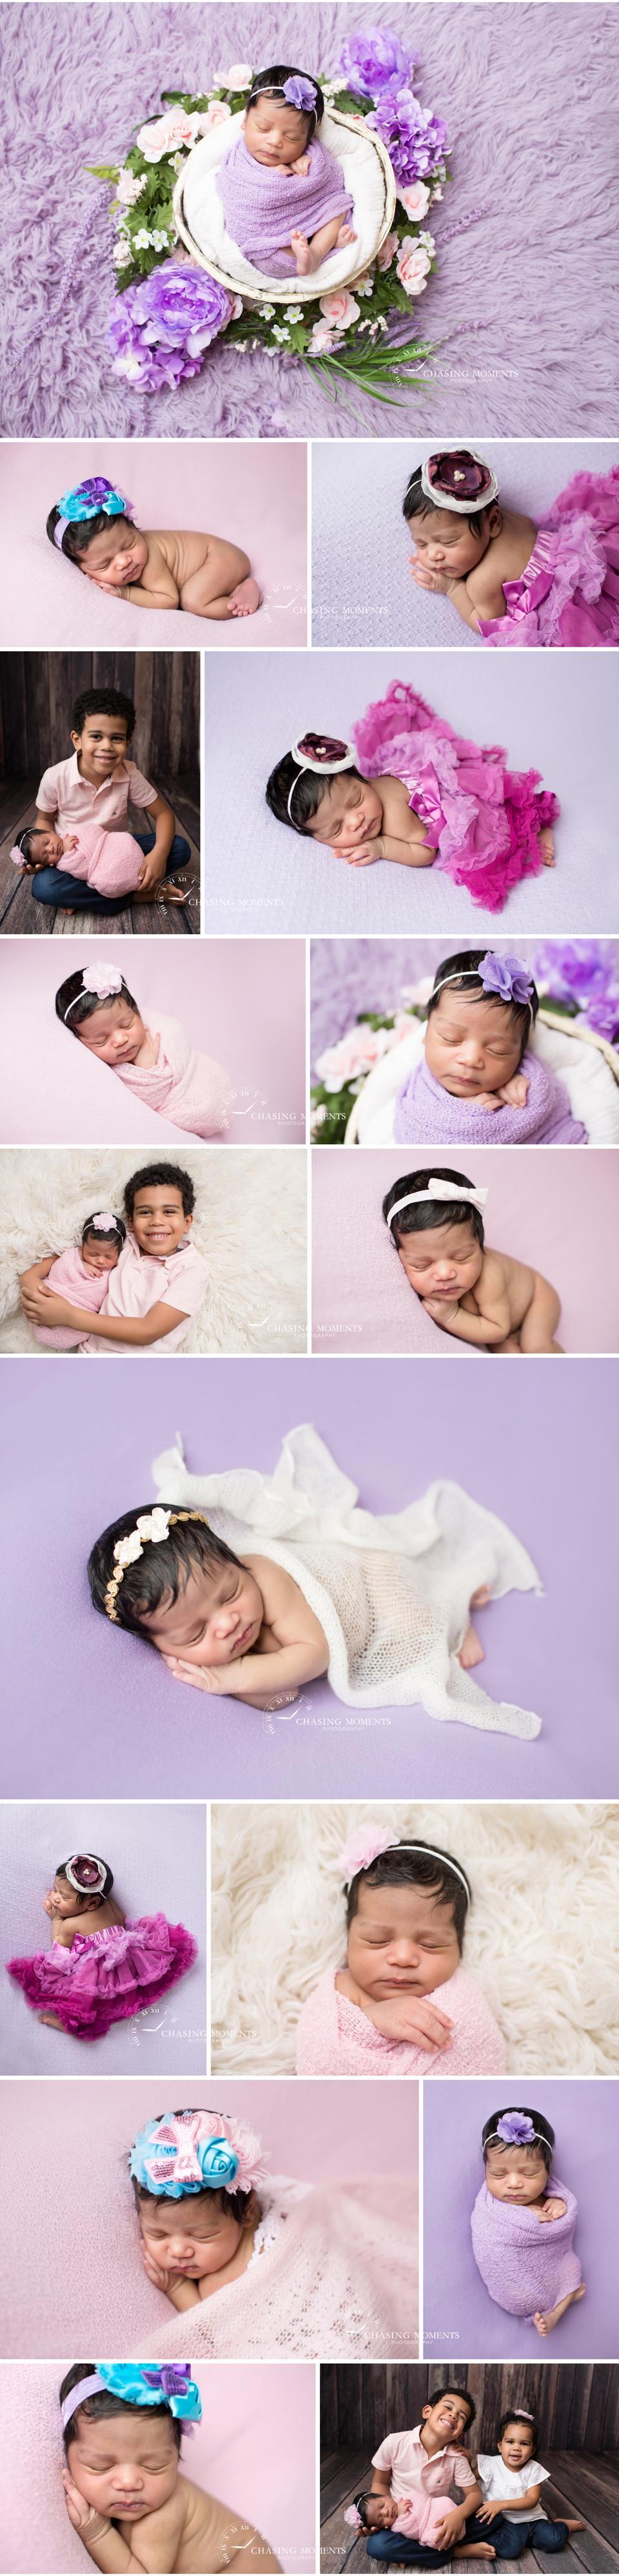 herndon newborn photographer 528